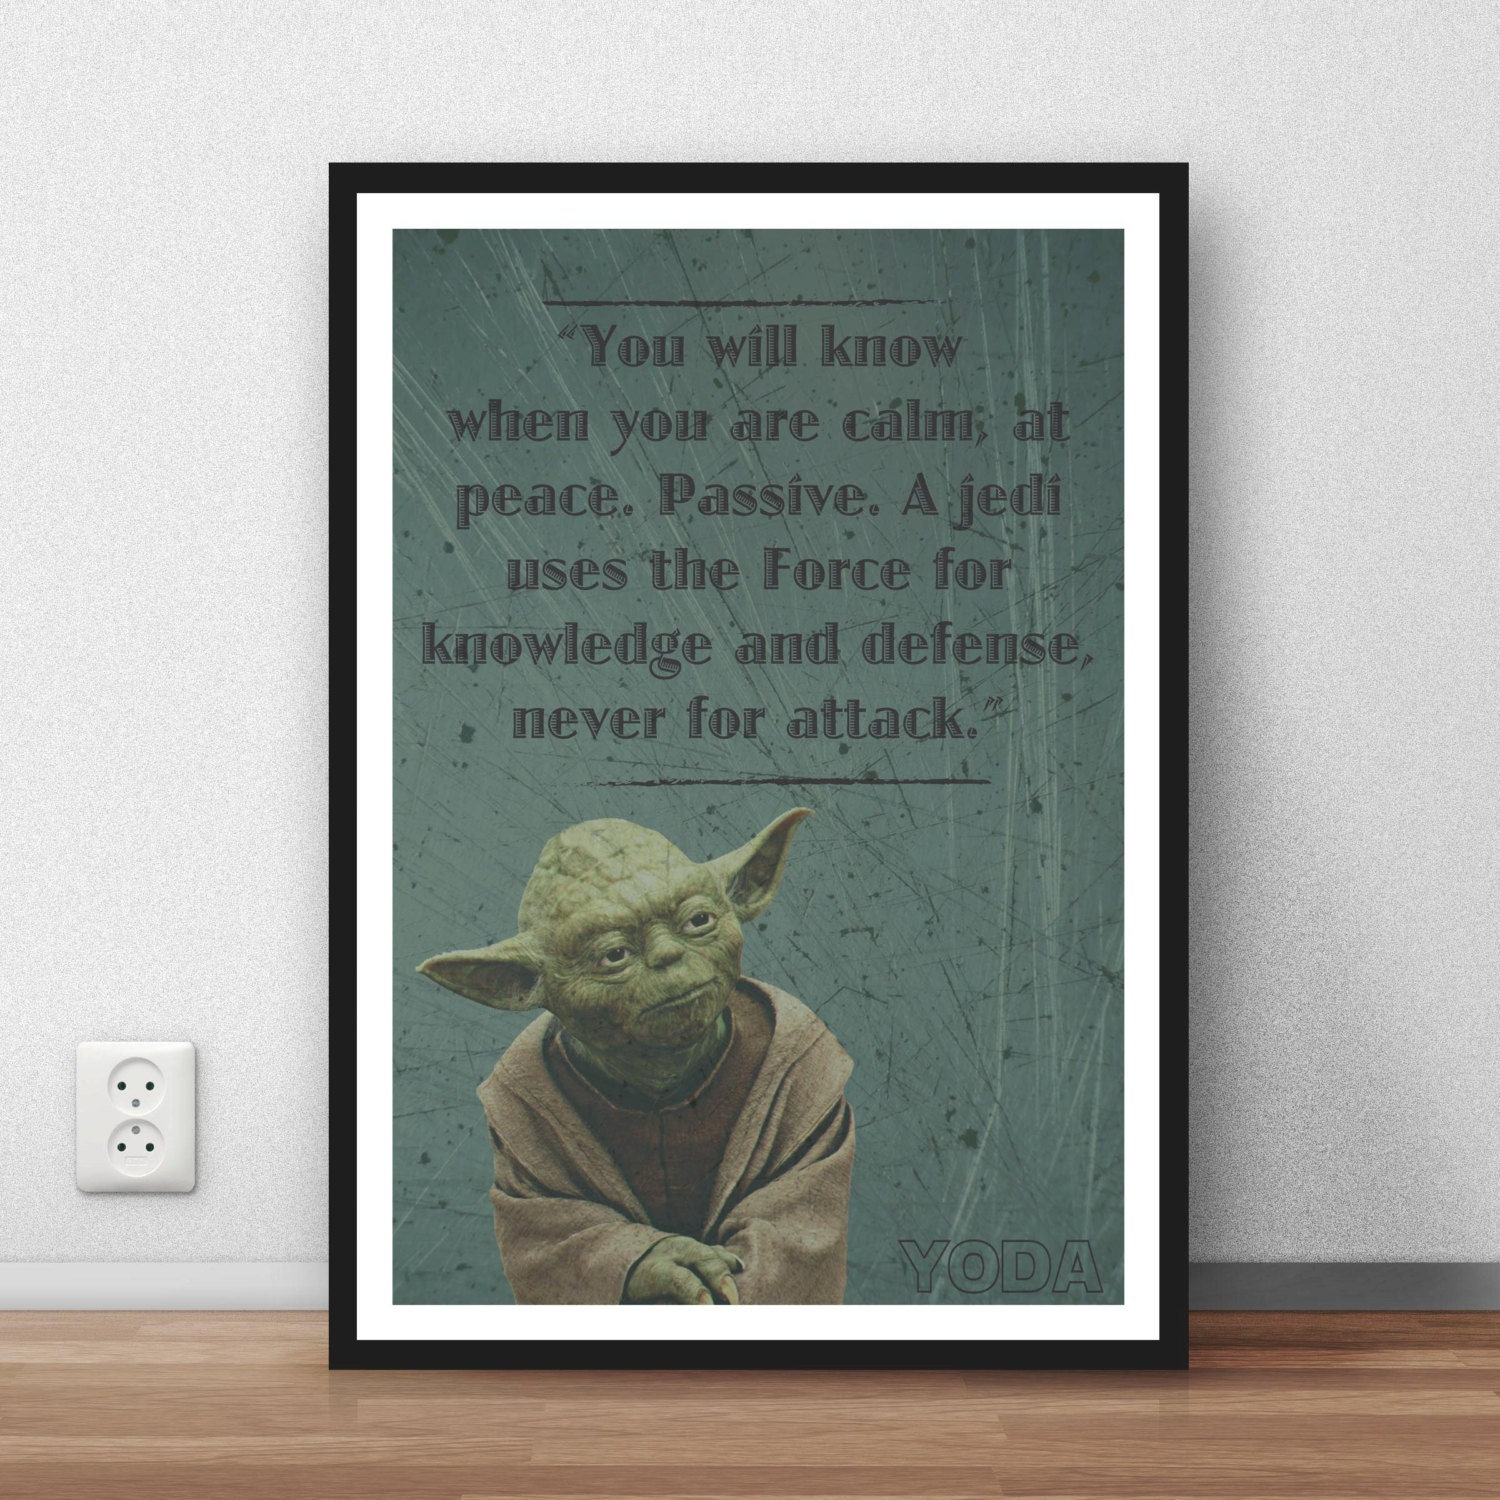 Jedi Master Yoda Quotes: Yoda Quote Star Wars 'A Jedi Uses The Force' Wall